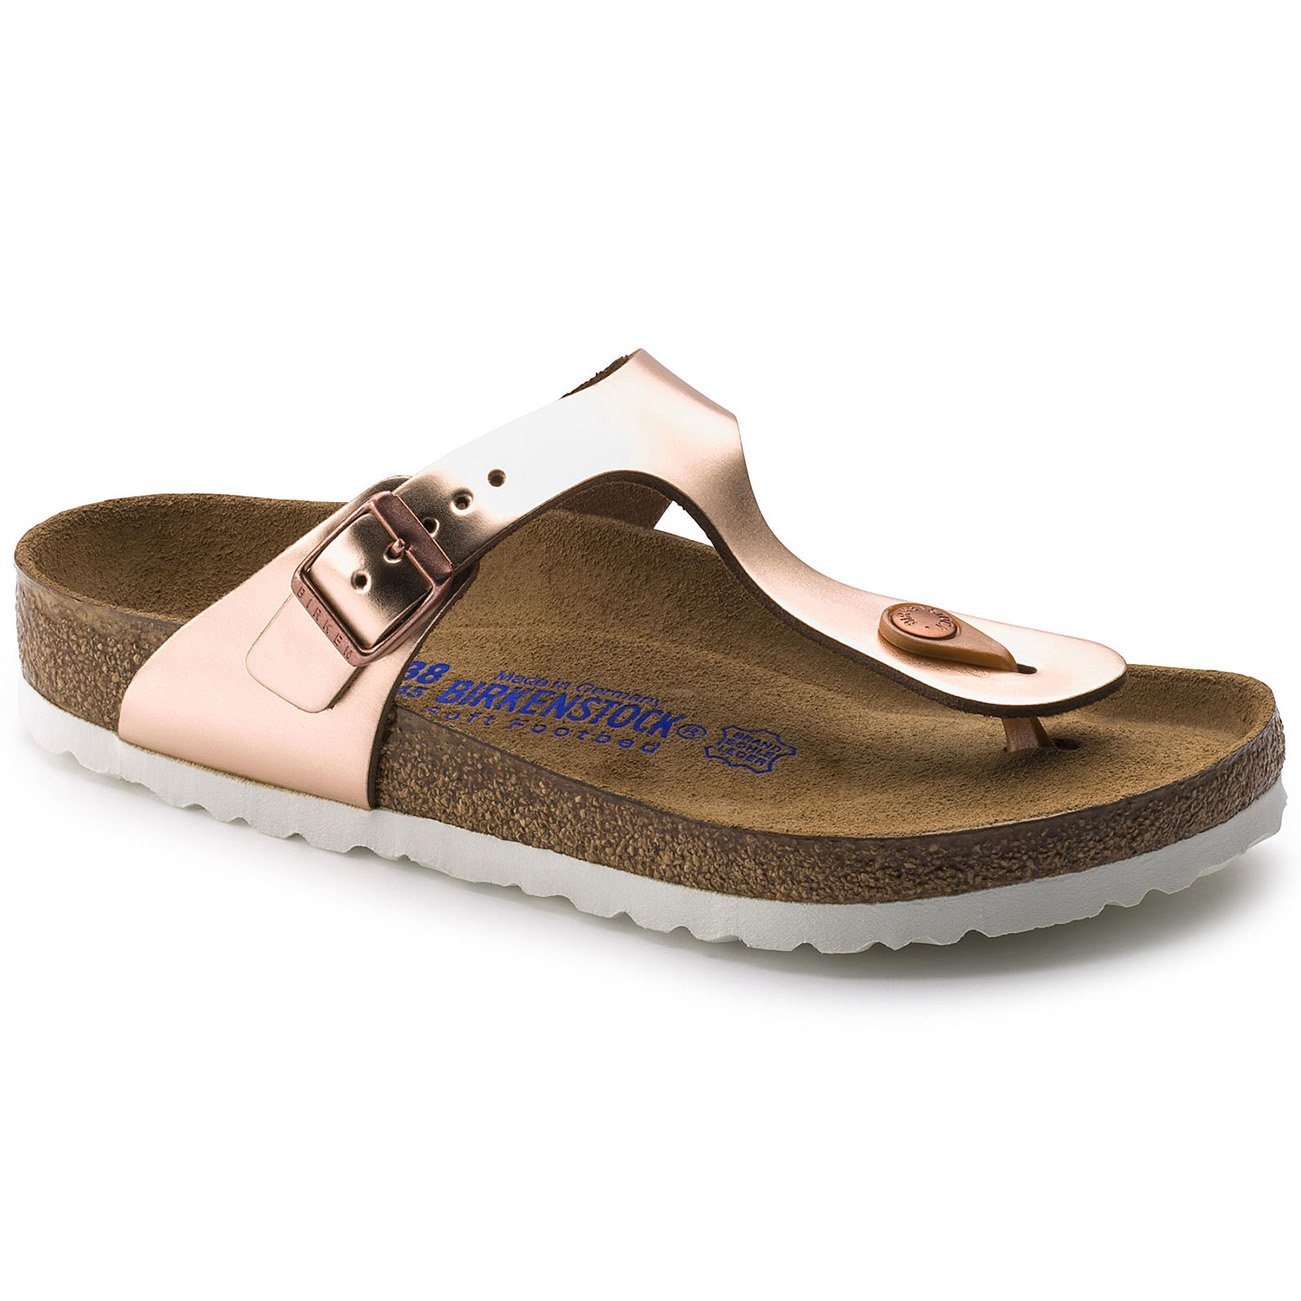 Details about Ladies Birkenstock Gizeh Soft Foot Bed Thong Holiday Open Toe Sandals All Sizes